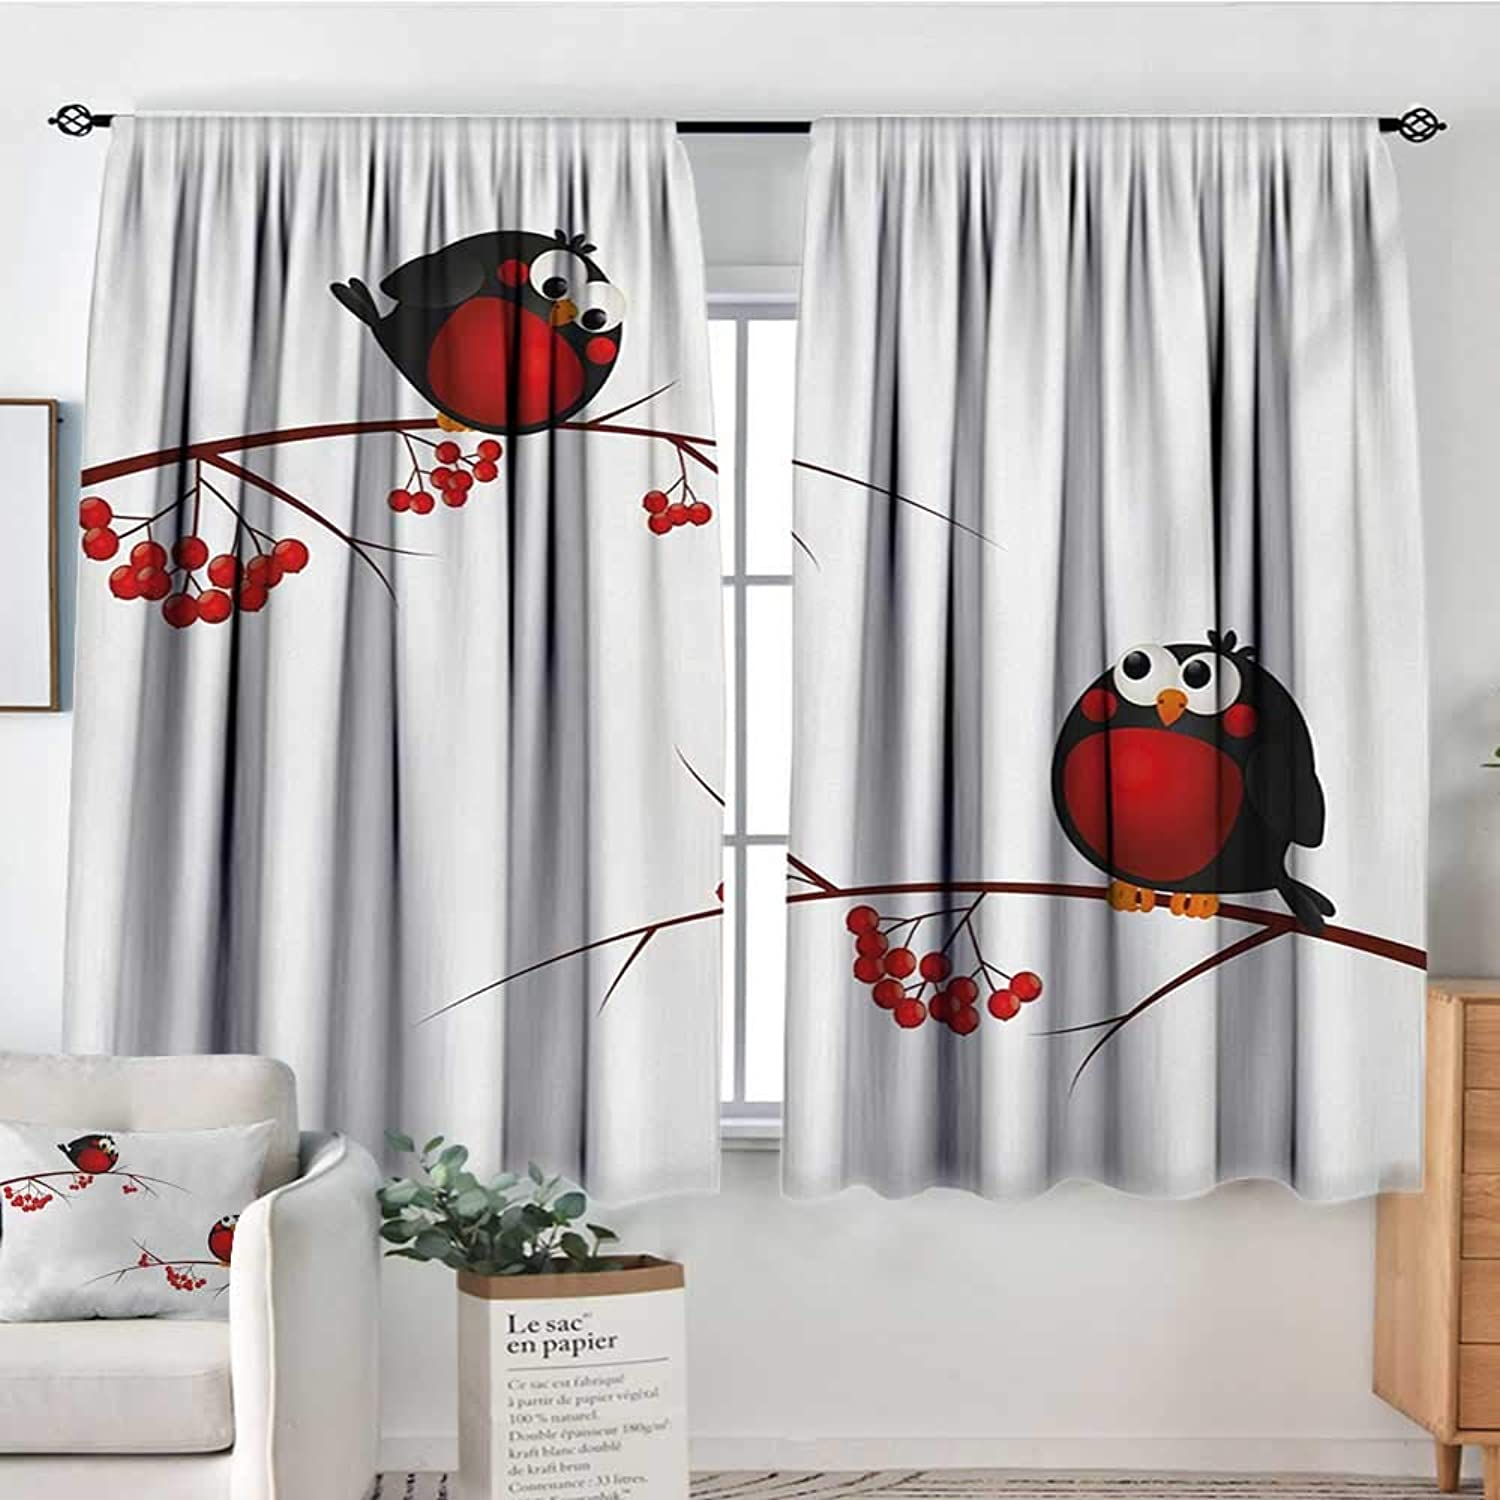 All of better Rowan Thermal Insulating Blackout Curtain Cute Kids Themed Cartoon Style Birds on Branches Funny Happy Christmas Design Kid Blackout Curtains 55  W x 45  L Red Black White